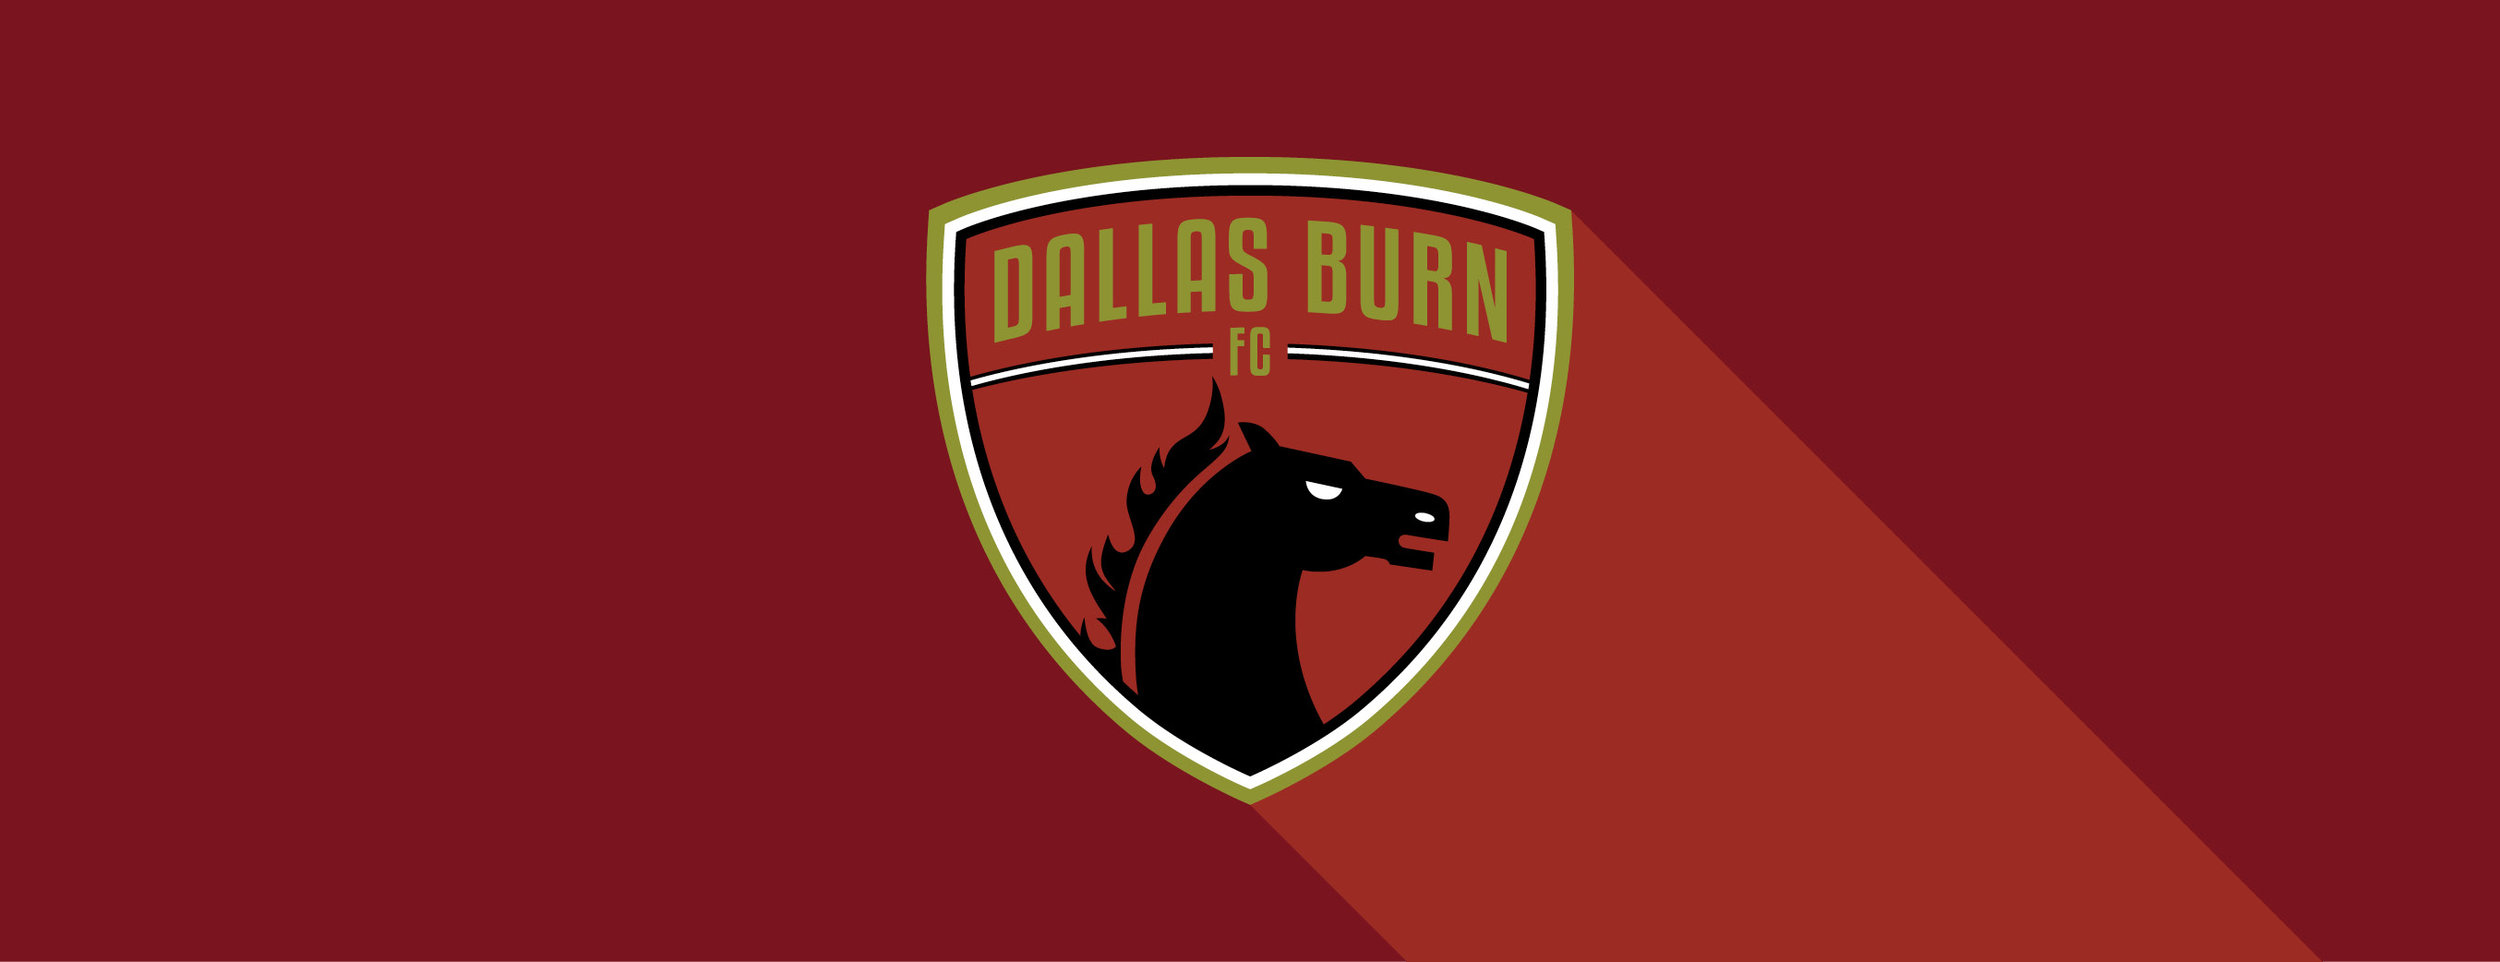 Blast from the Past, I kept the old name and added the FC from the new name, Dallas Burn FC.